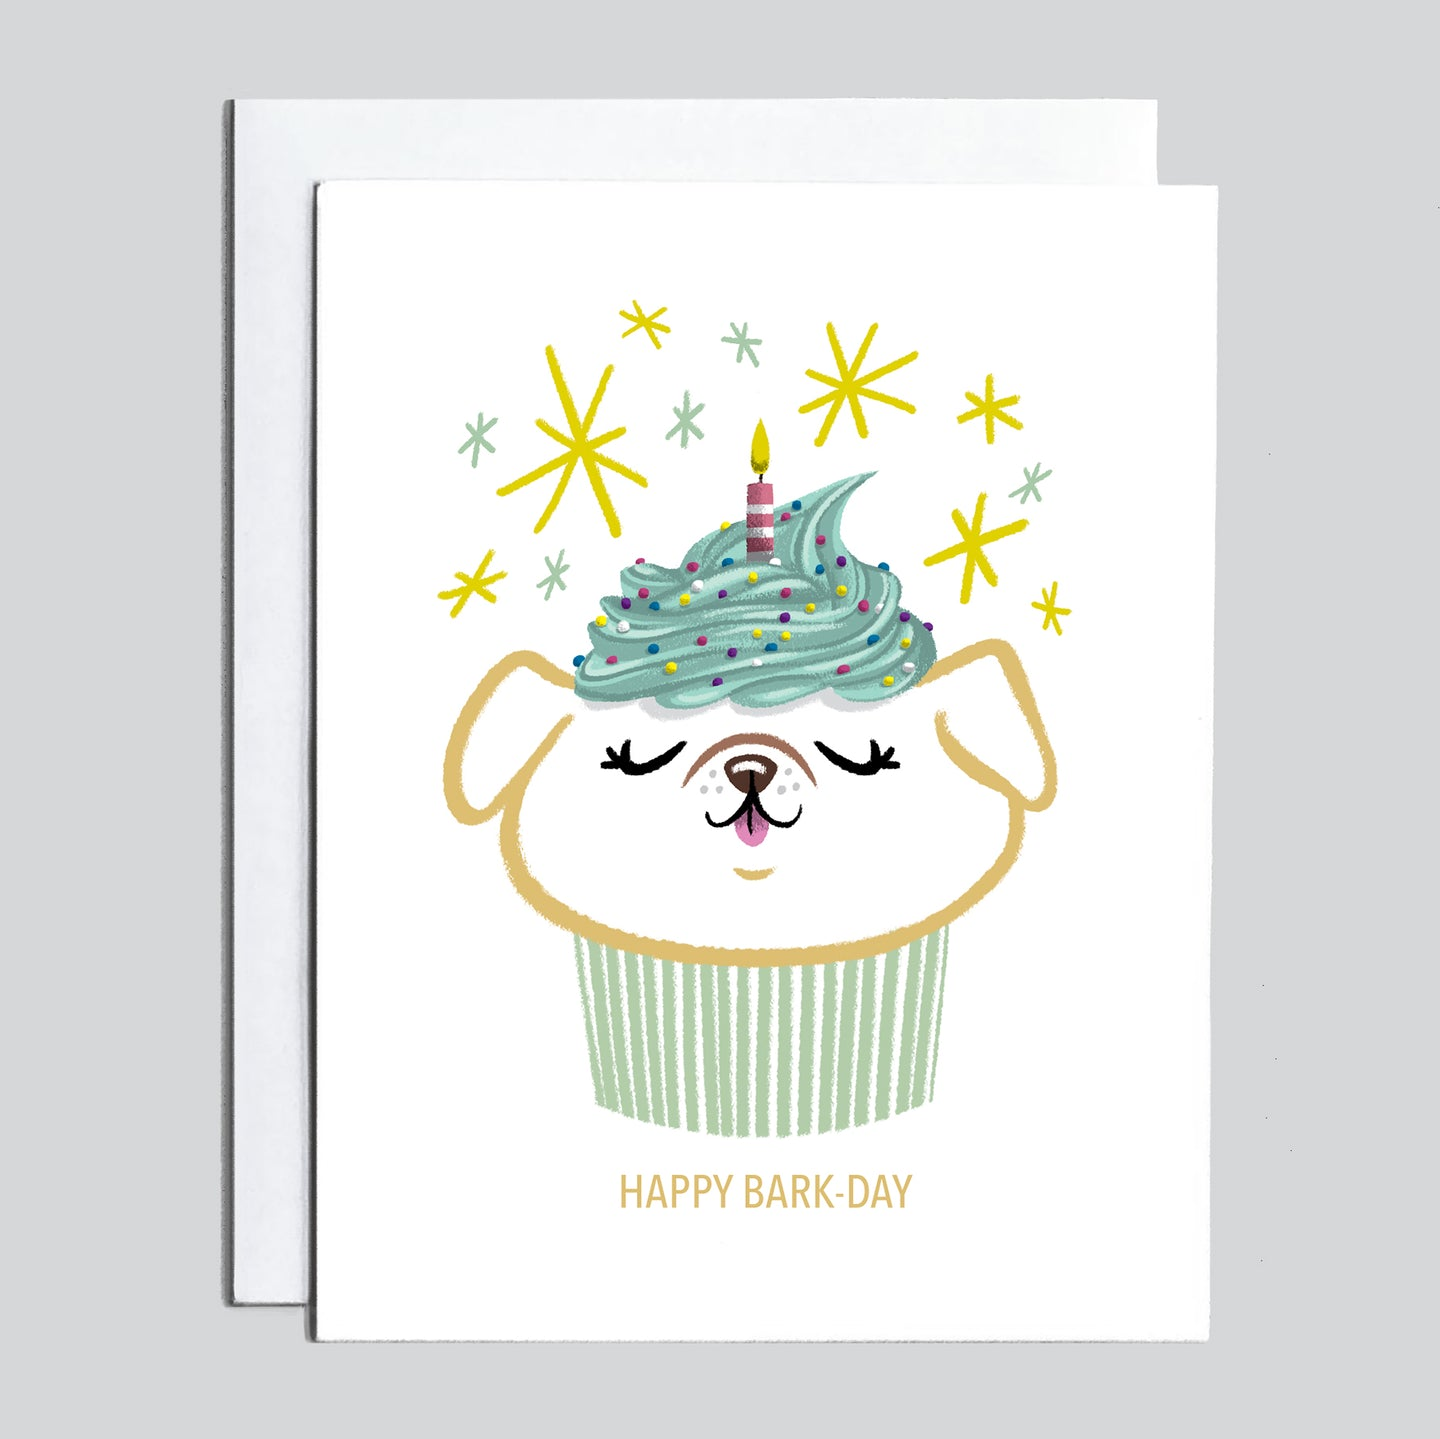 Birthday Card - Happy Bark-Day